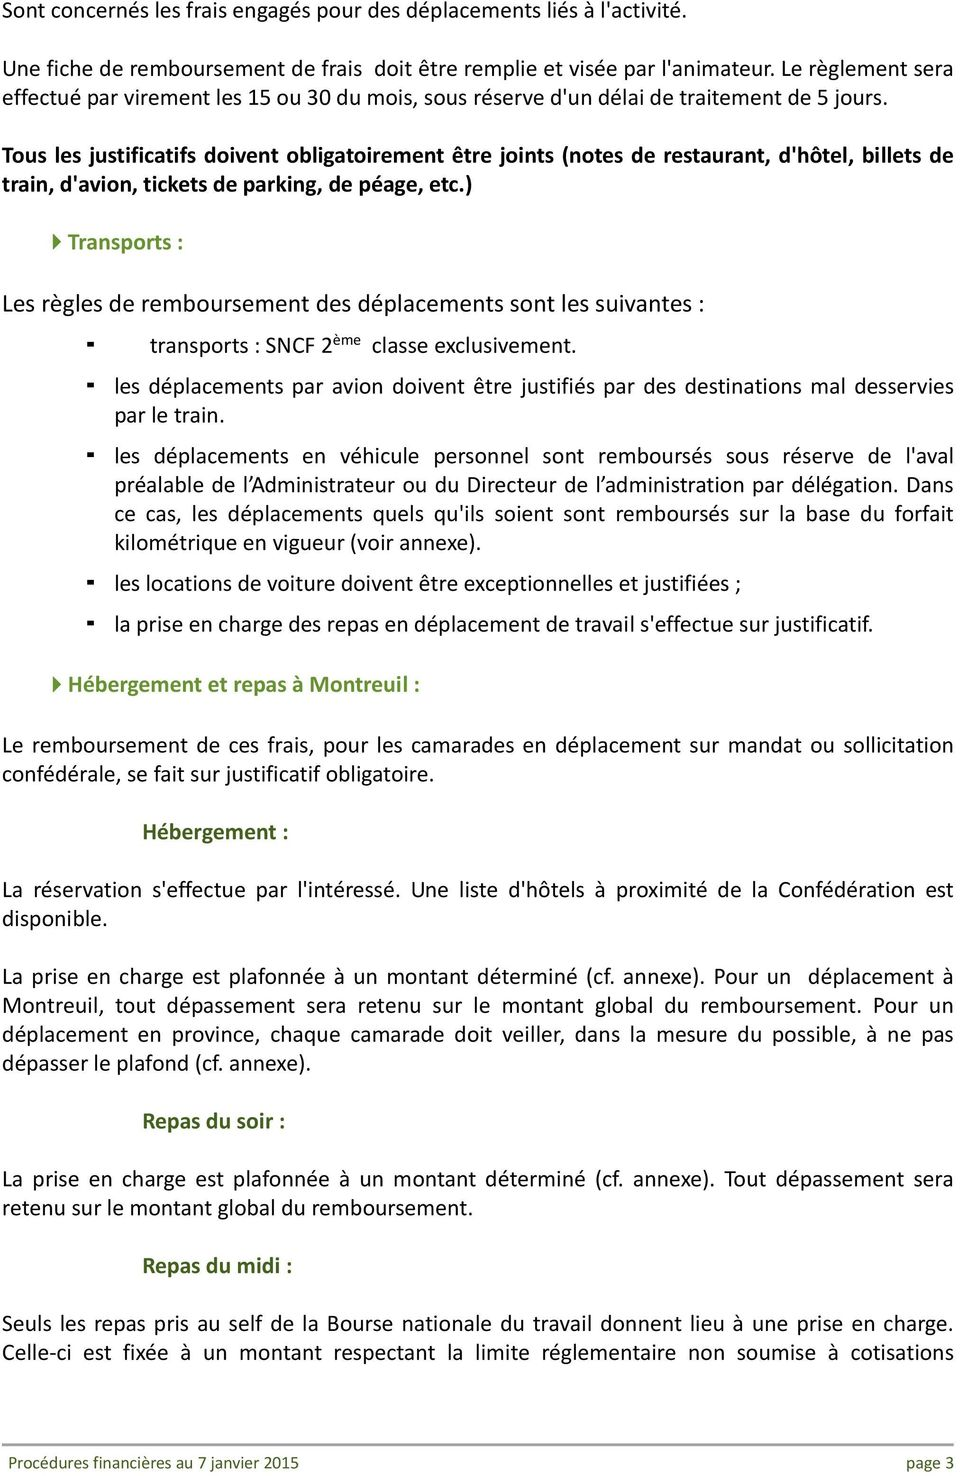 Tous les justificatifs doivent obligatoirement être joints (notes de restaurant, d'hôtel, billets de train, d'avion, tickets de parking, de péage, etc.